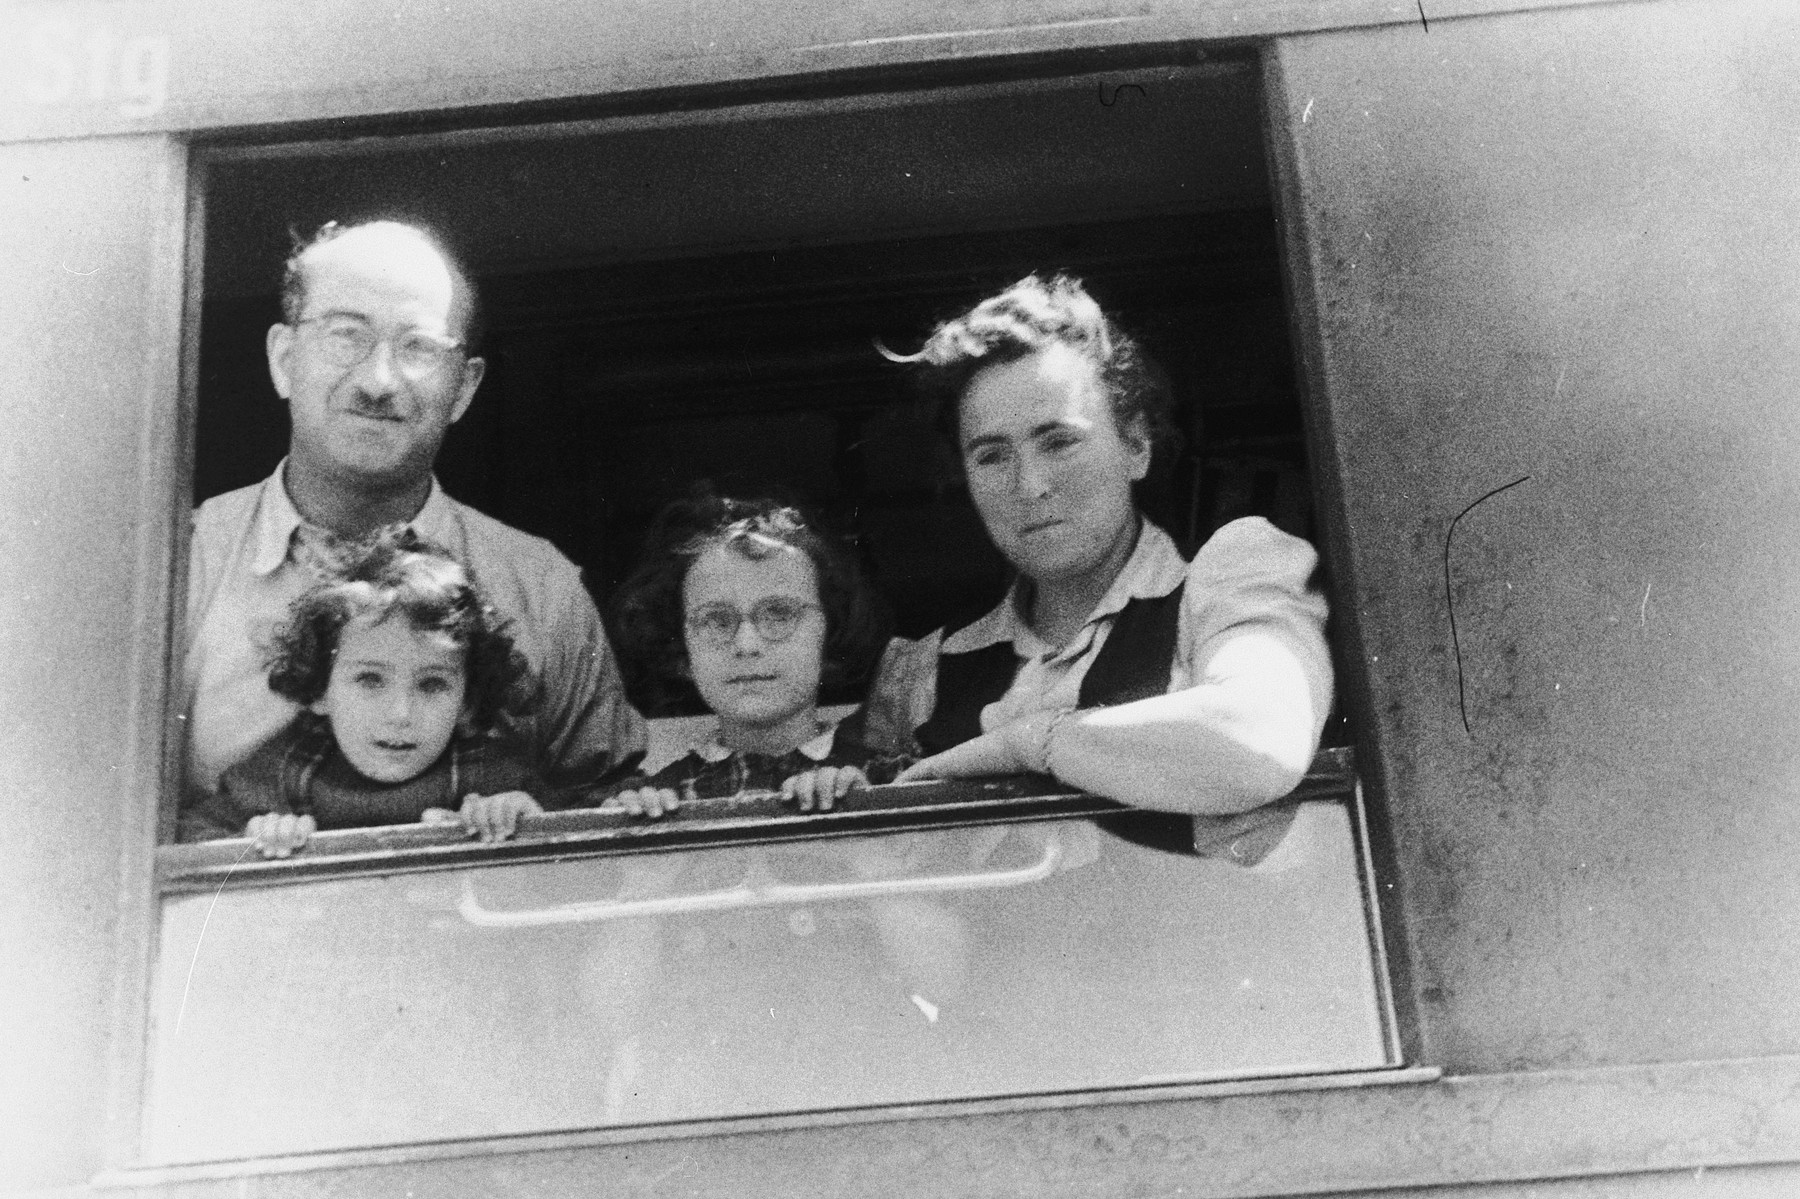 The Slepian family looks out a window of their train while on route to Bremerhaven, where they will board a ship to America.